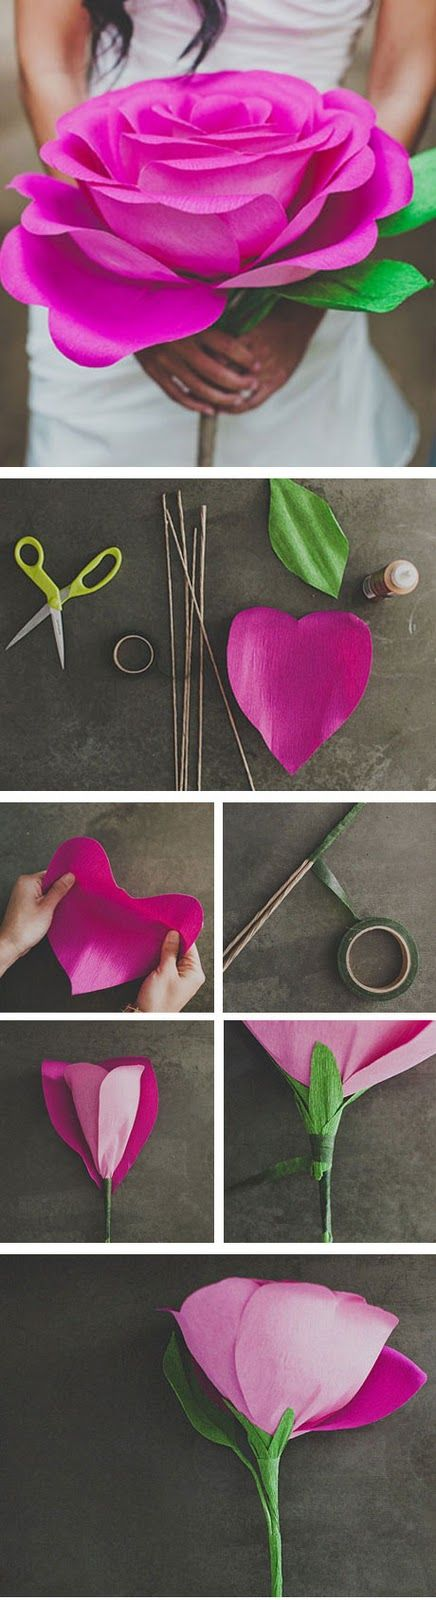 #DIY: Giant Paper Rose Flower #wedding